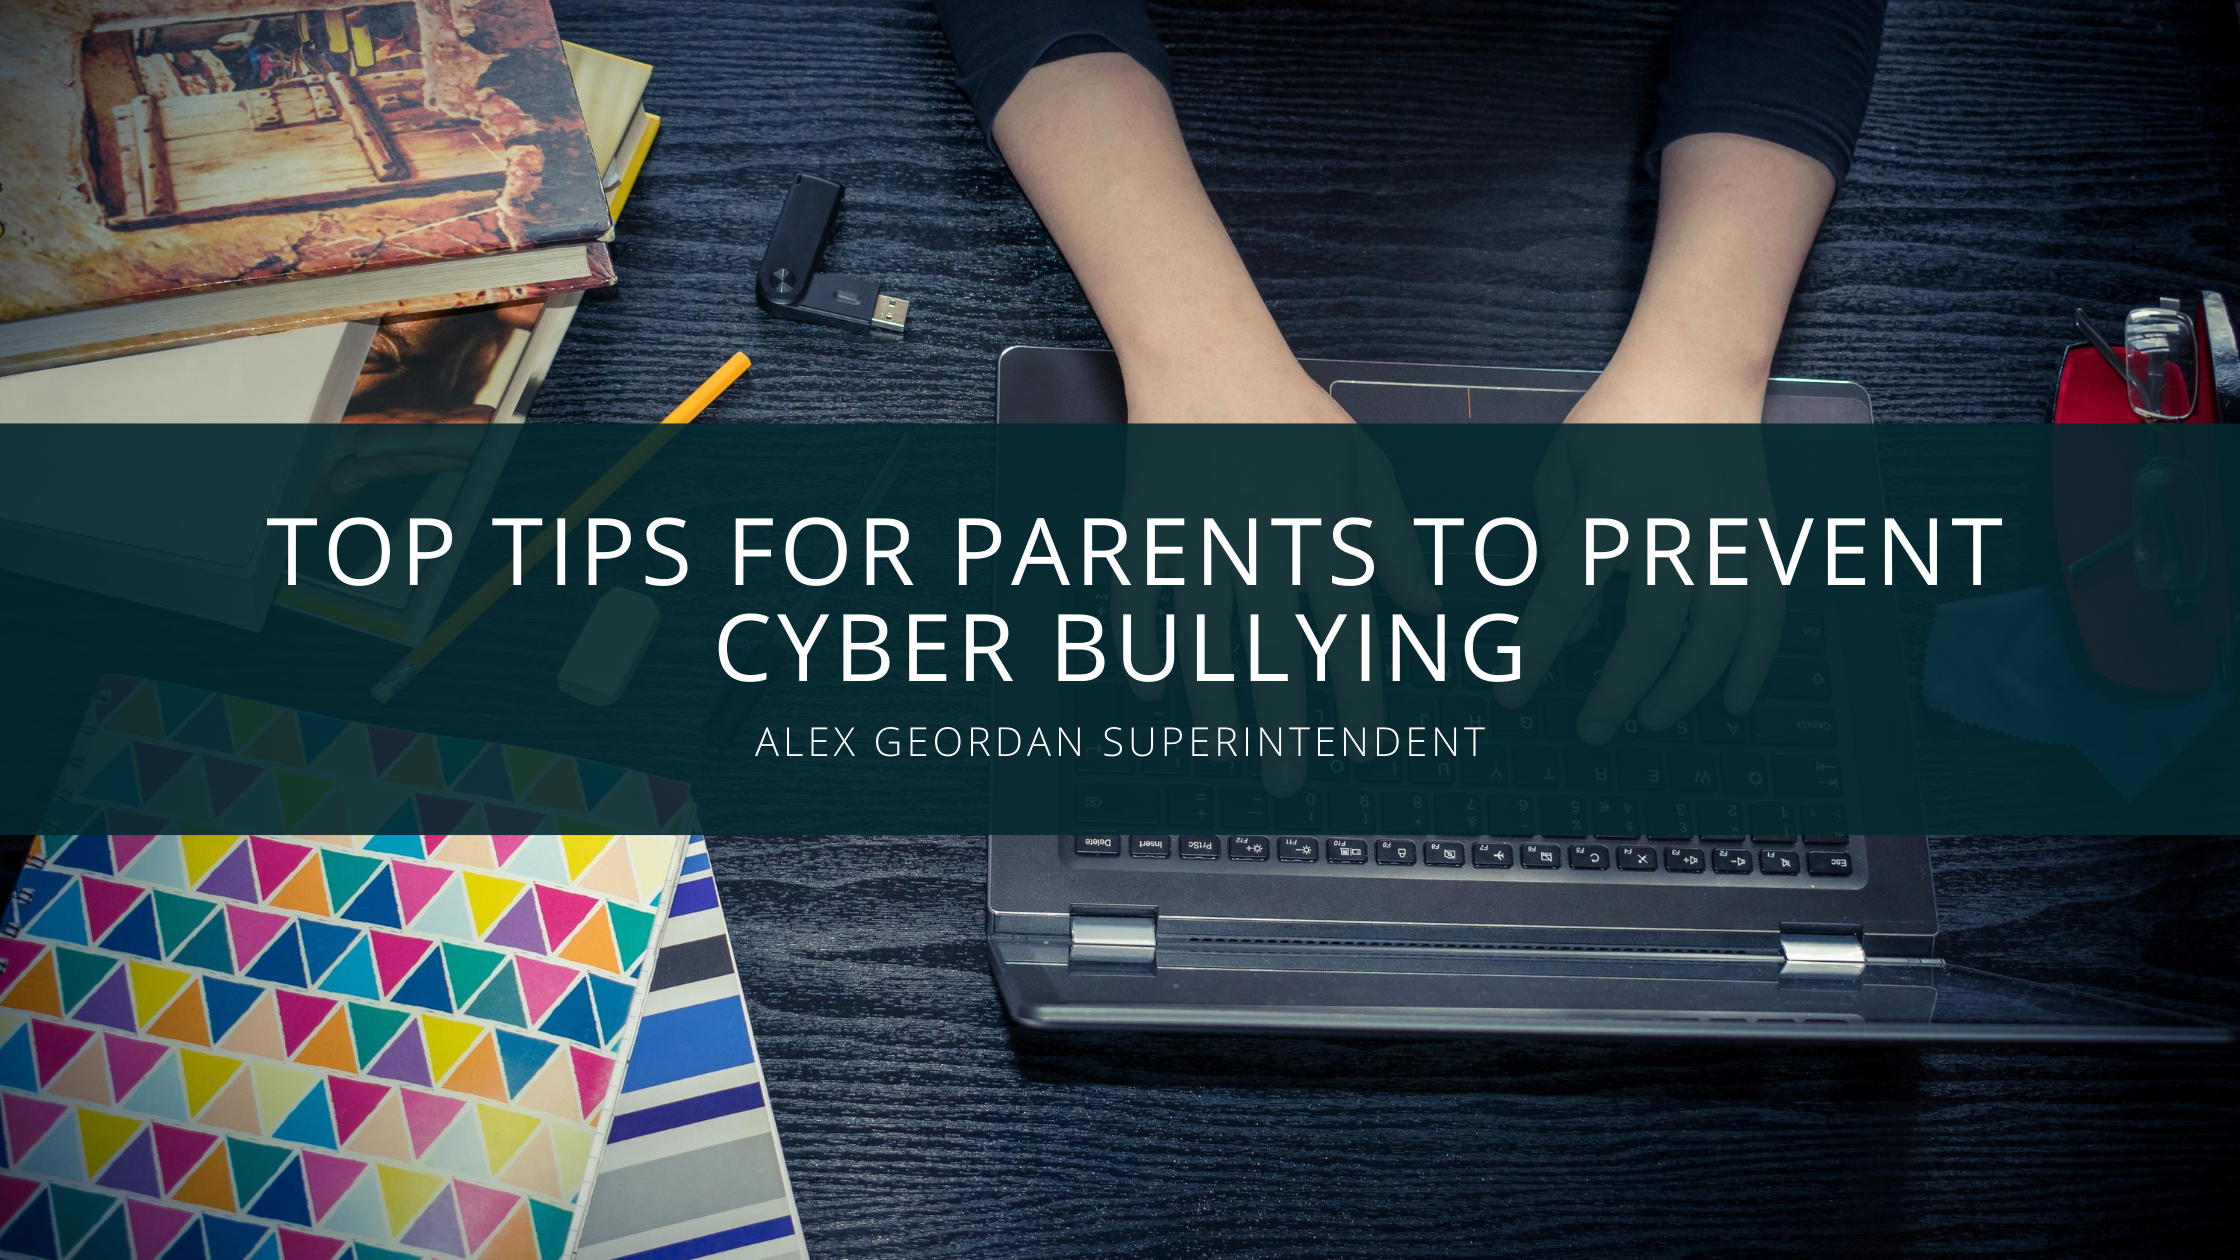 Alex Geordan Superintendent Discusses His Top Tips for Parents to Prevent Cyber Bullying